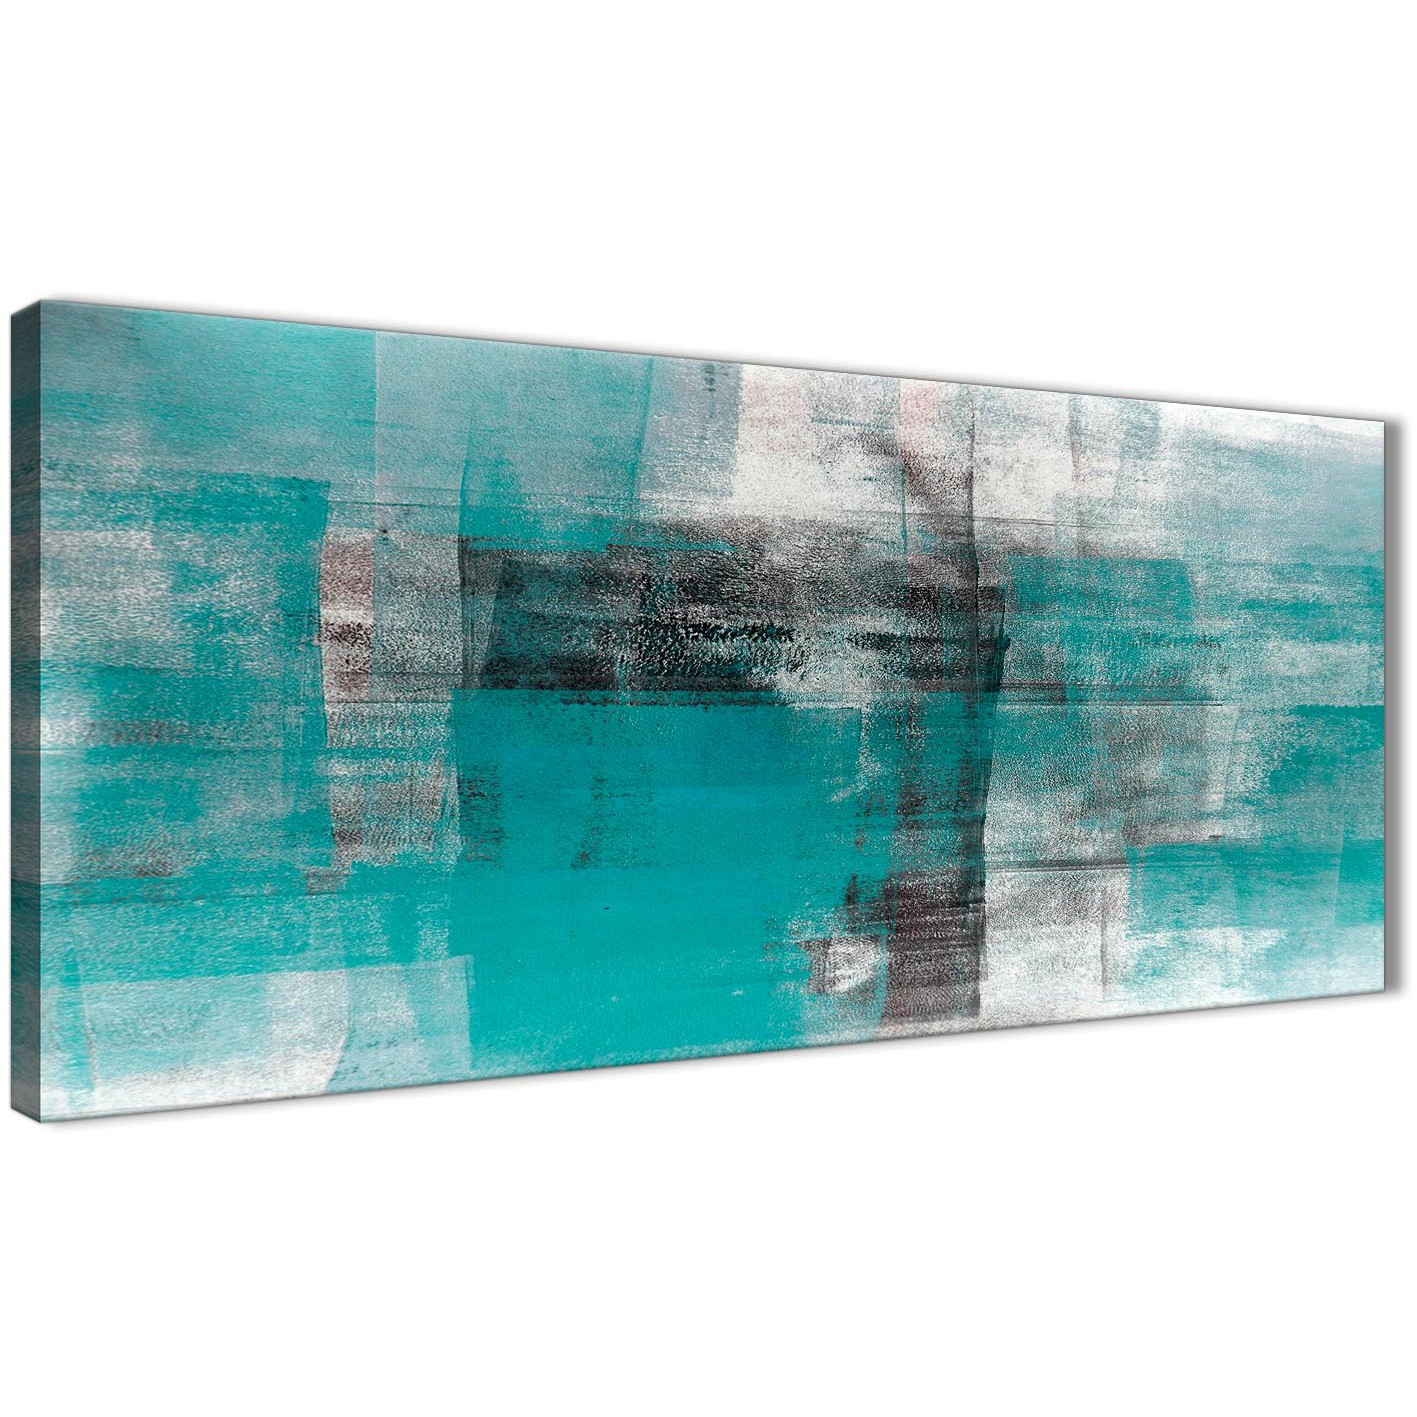 Teal black white painting bedroom canvas wall art accessories abstract 1399 120cm print